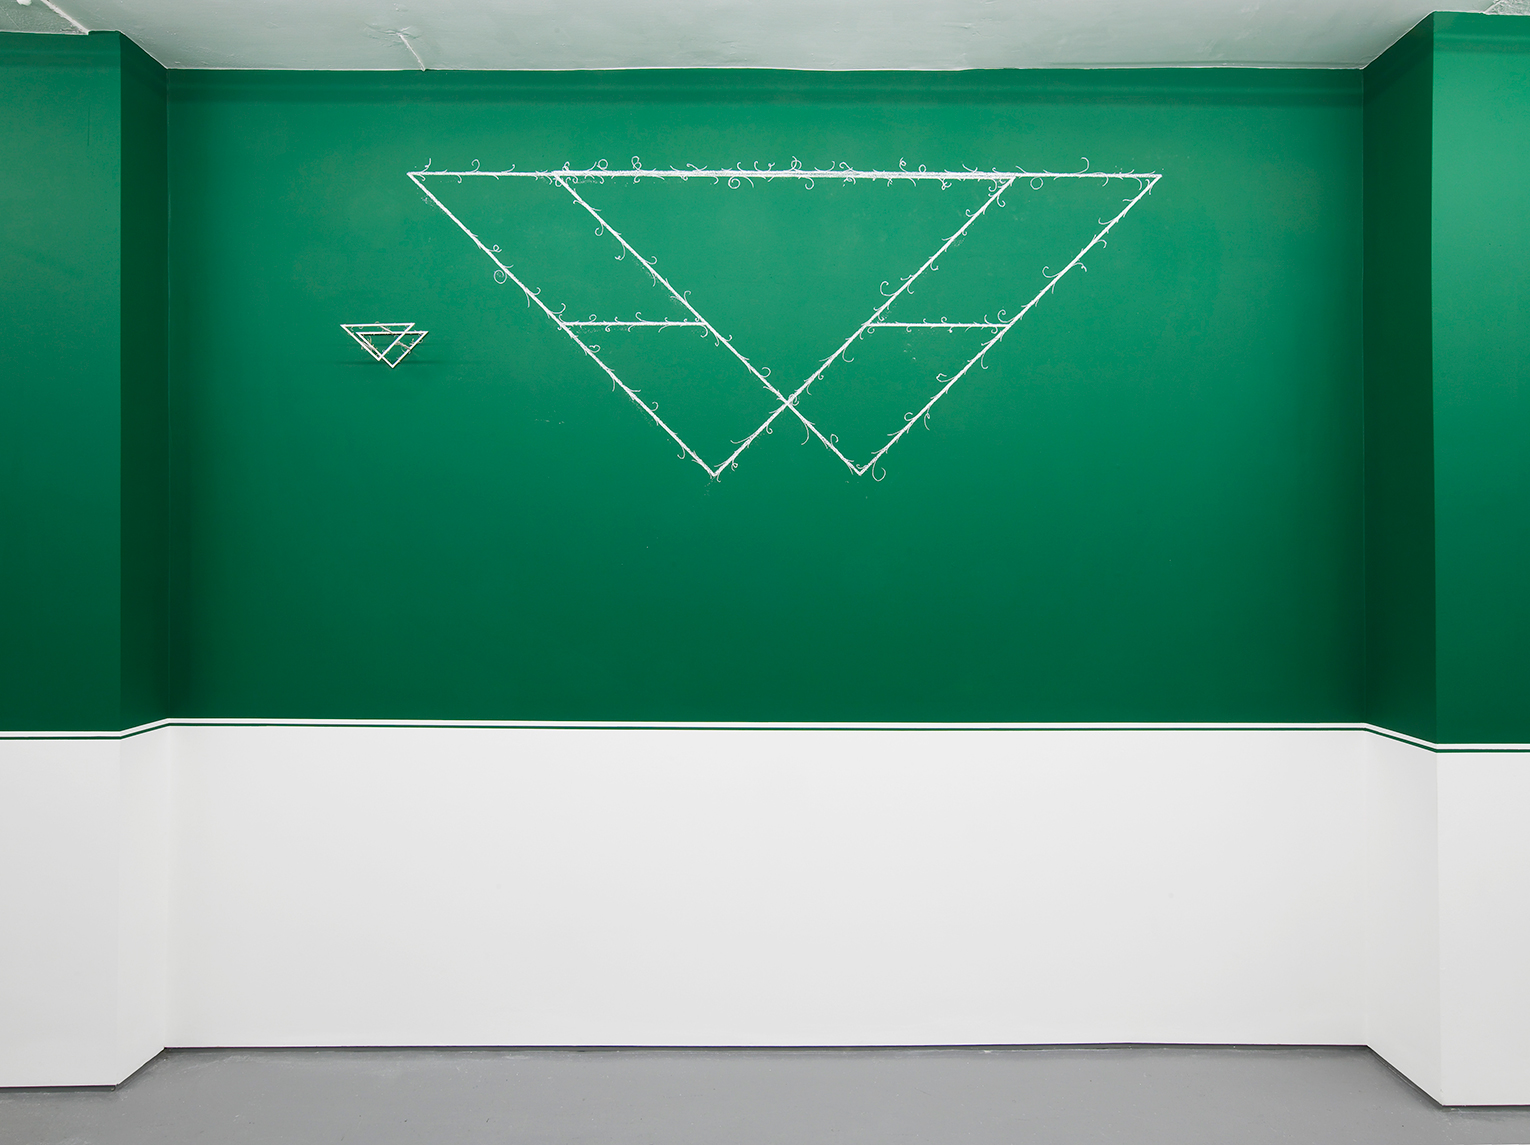 <b>Title:&nbsp;</b>Large Triangle<br /><b>Year:&nbsp;</b>2017<br /><b>Medium:&nbsp;</b>Chalk<br /><b>Size:&nbsp;</b>97cm x 237cm